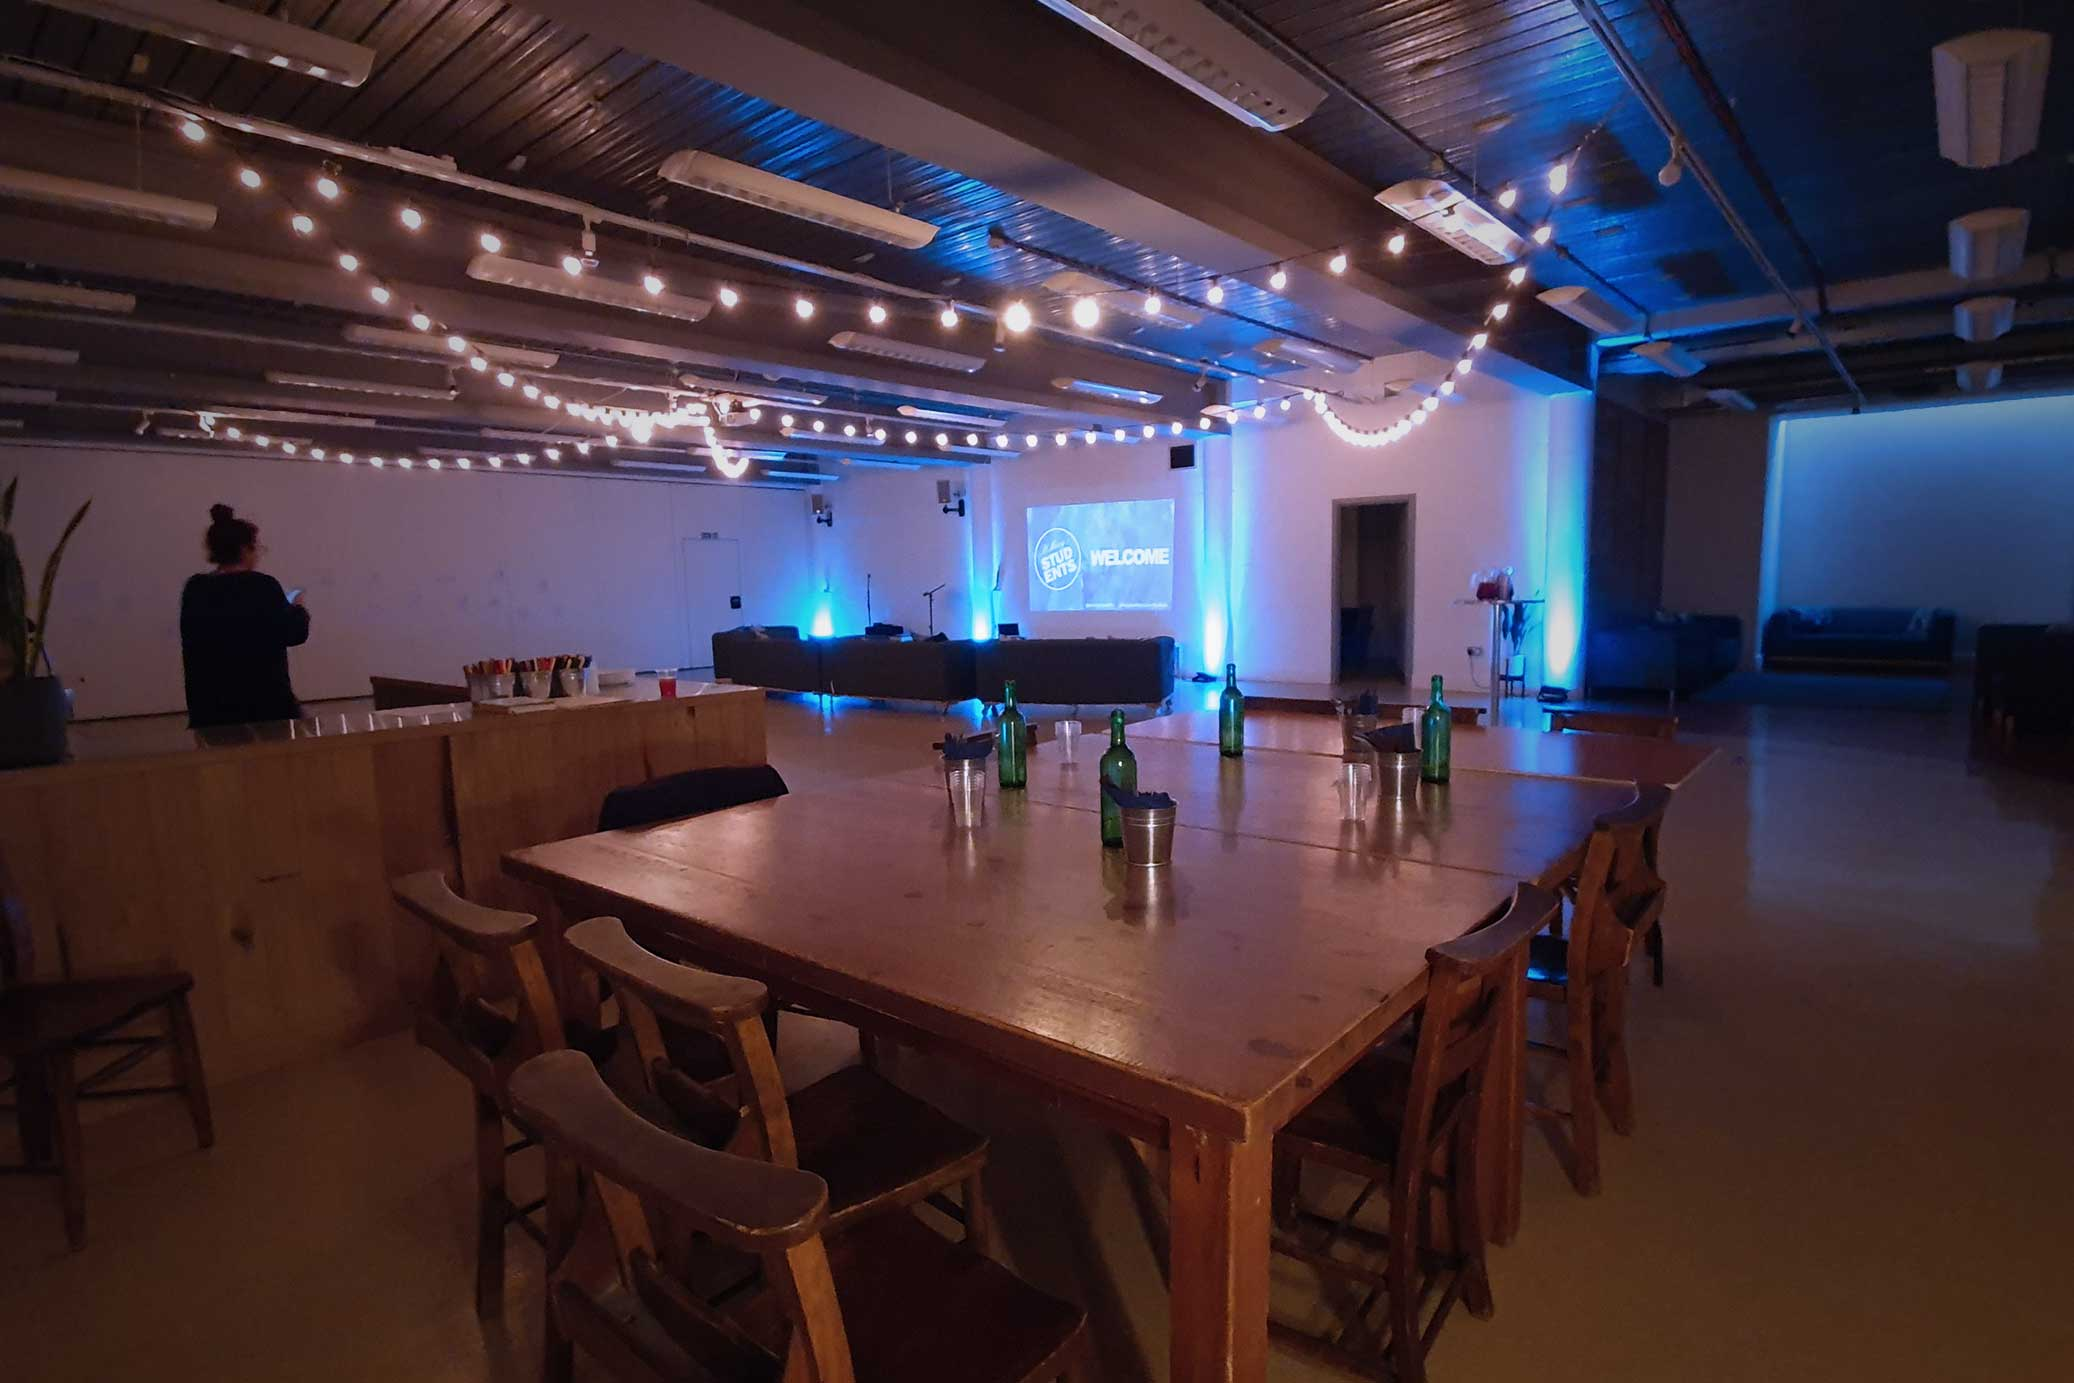 blue lighting and festoons on the lower floor at Conference with screens and sofa style seating at St Mary's Venue Hire, London